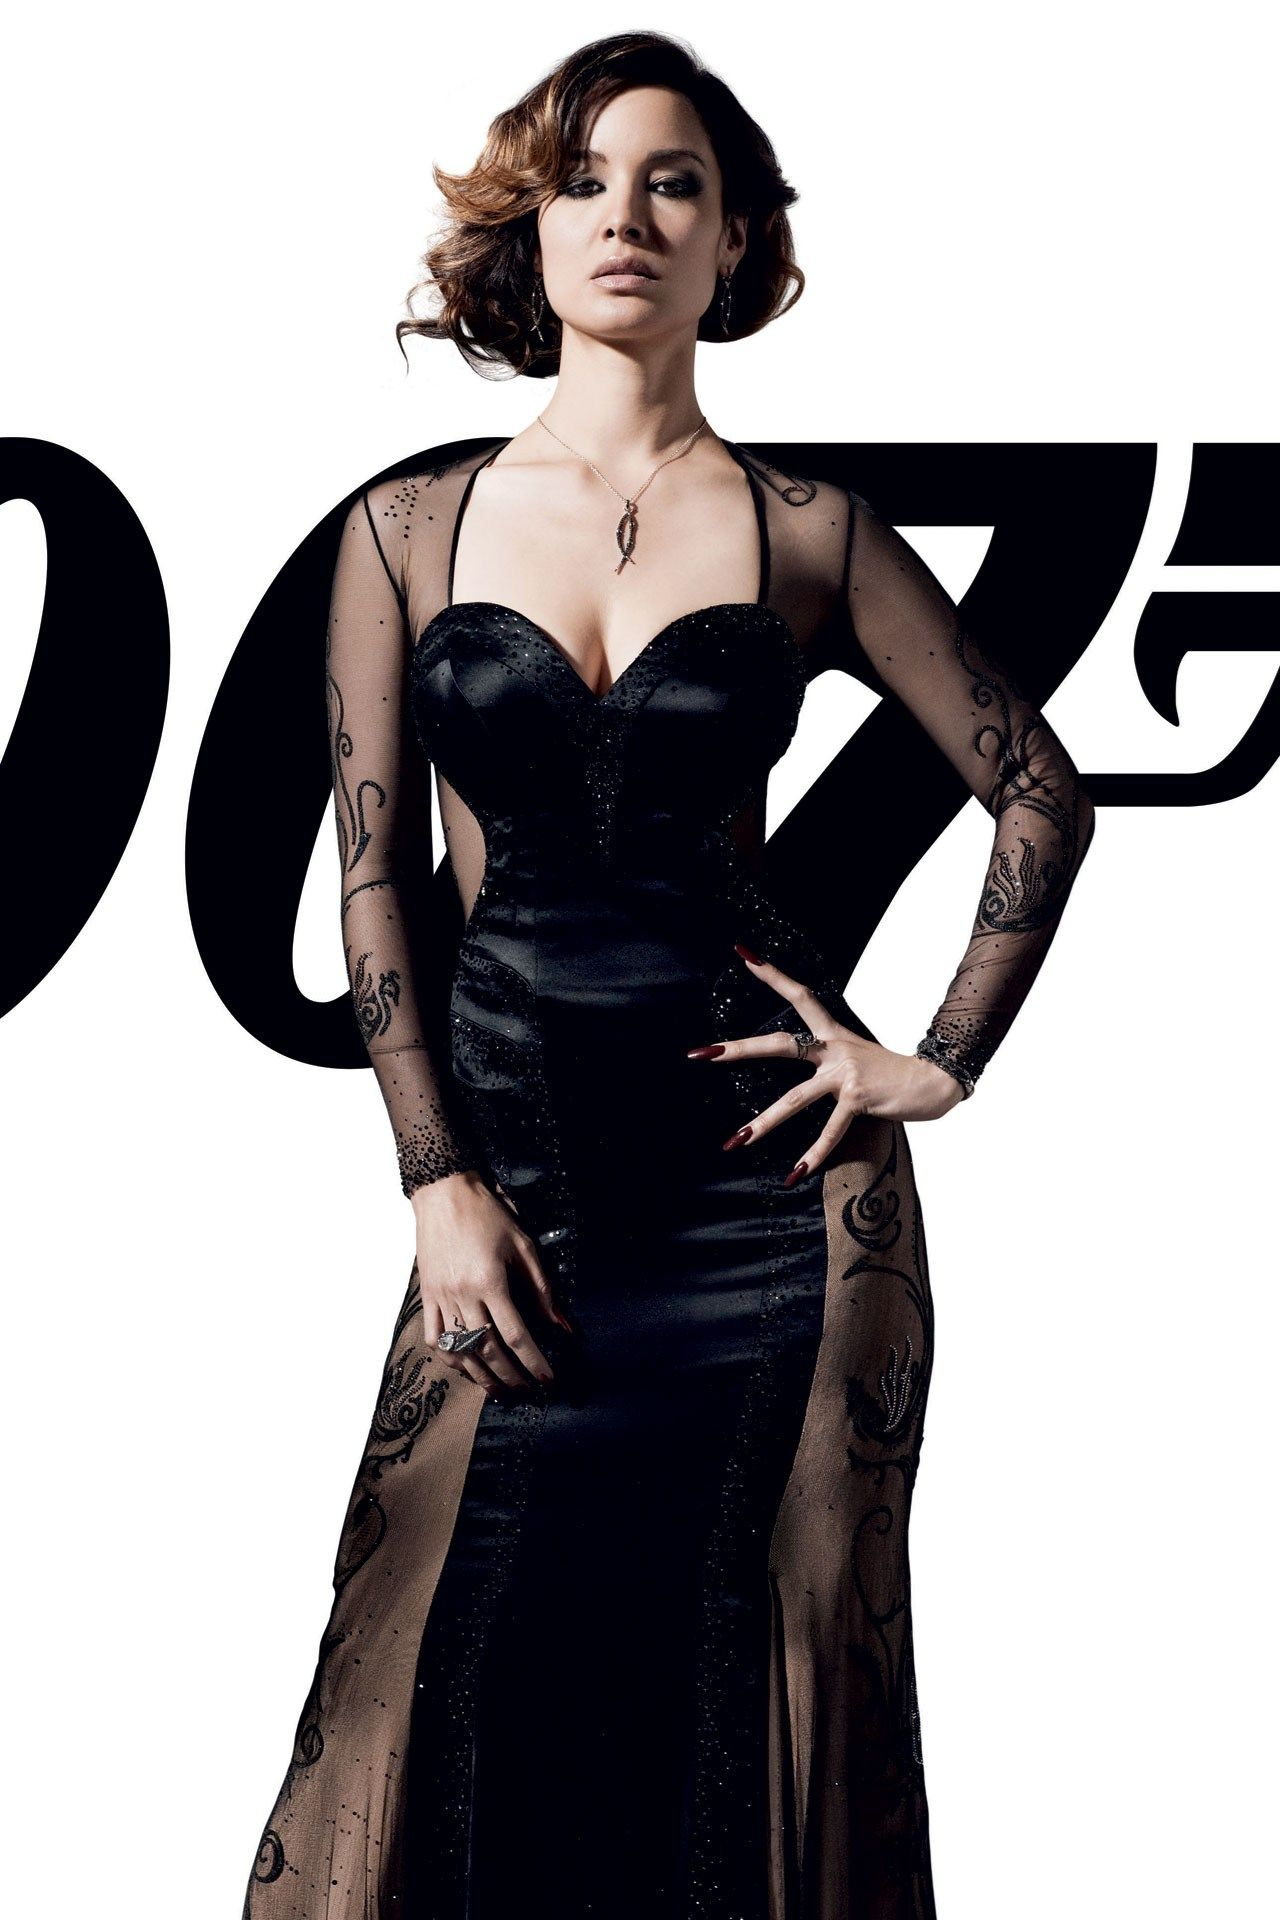 James Bond in a skirt 37